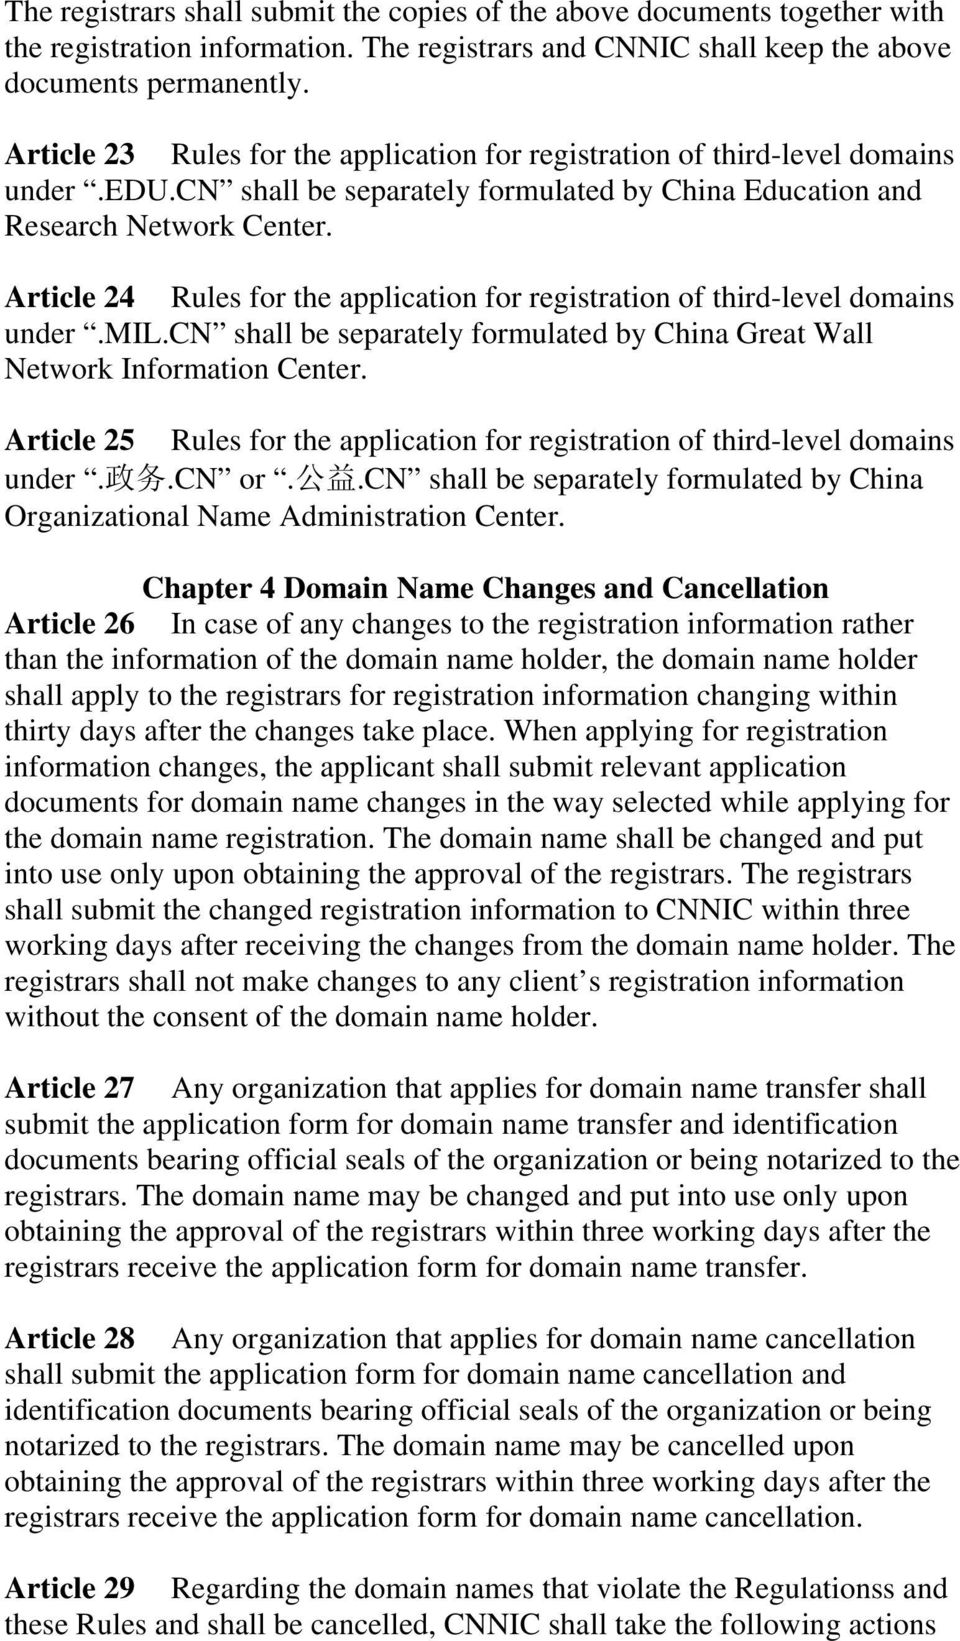 Article 24 Rules for the application for registration of third-level domains under.mil.cn shall be separately formulated by China Great Wall Network Information Center.